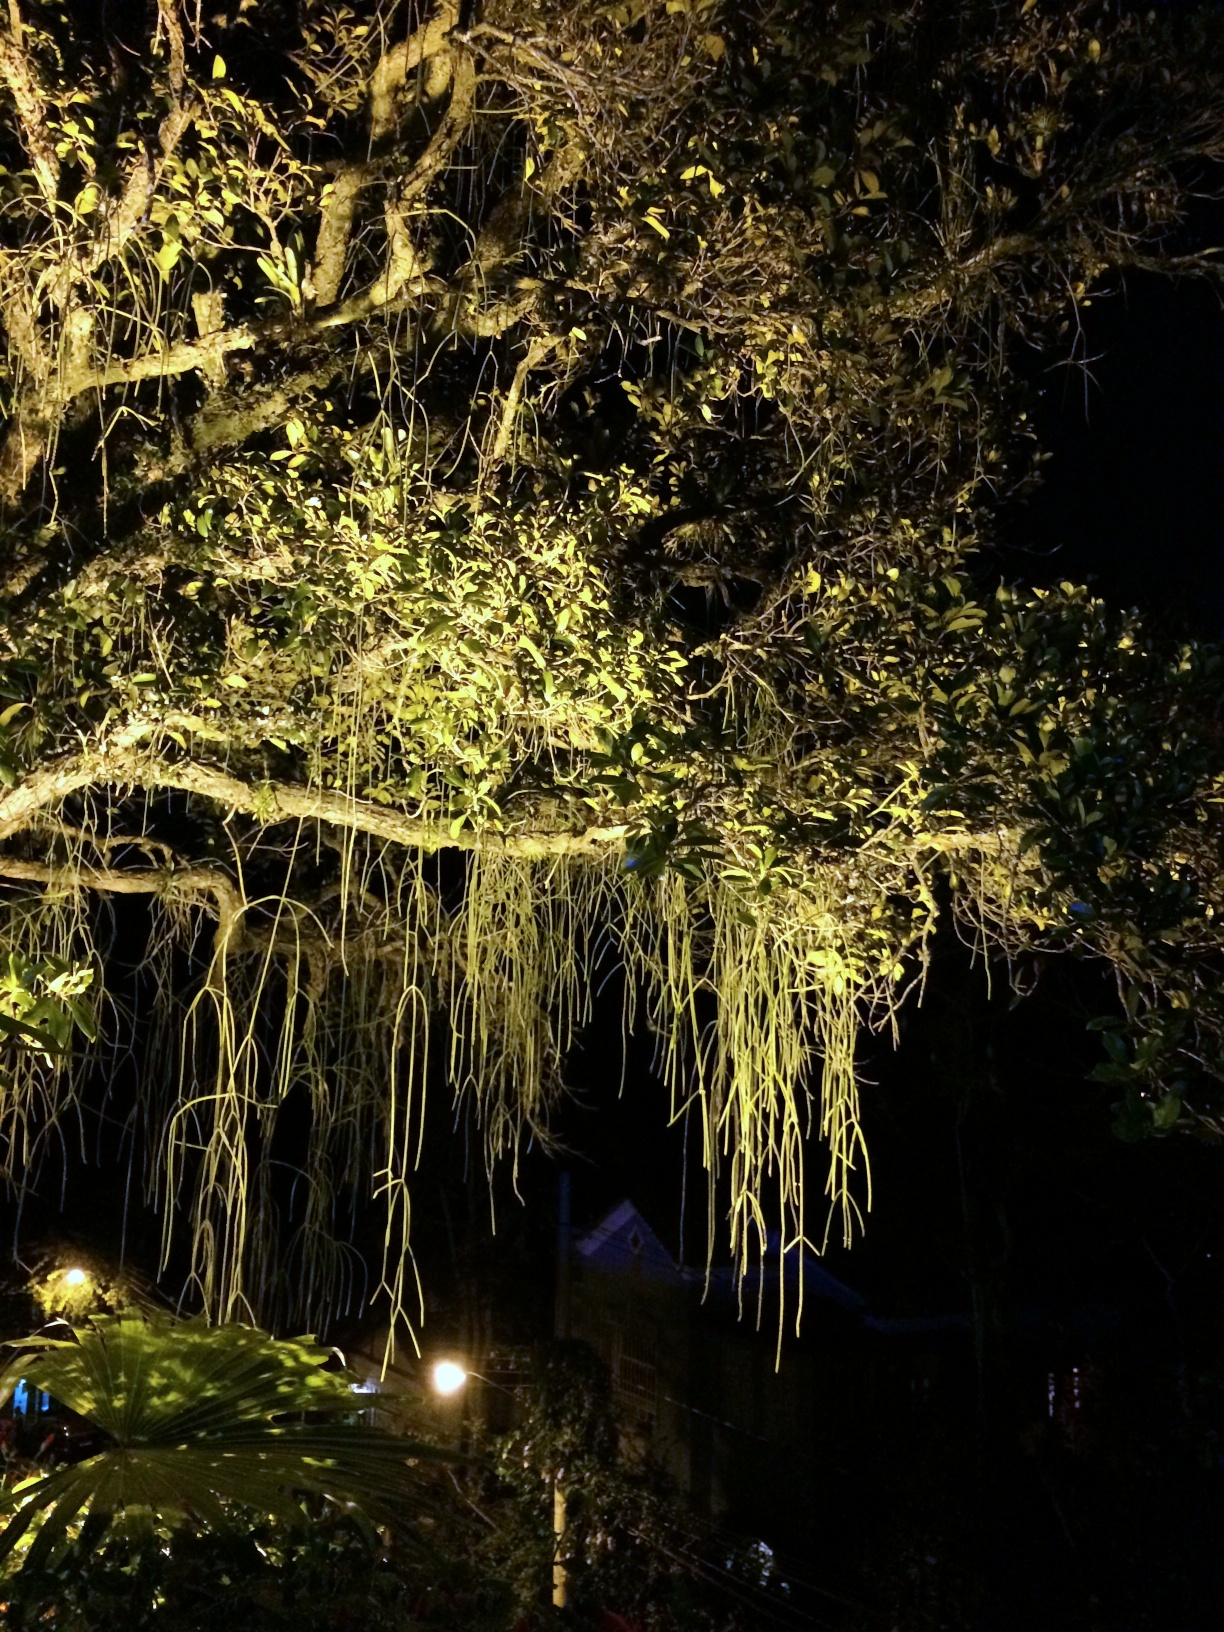 Rio de Janeiro, Brazil: the drama of an uplit tree at night when covered with festive Rhipsalis streamers